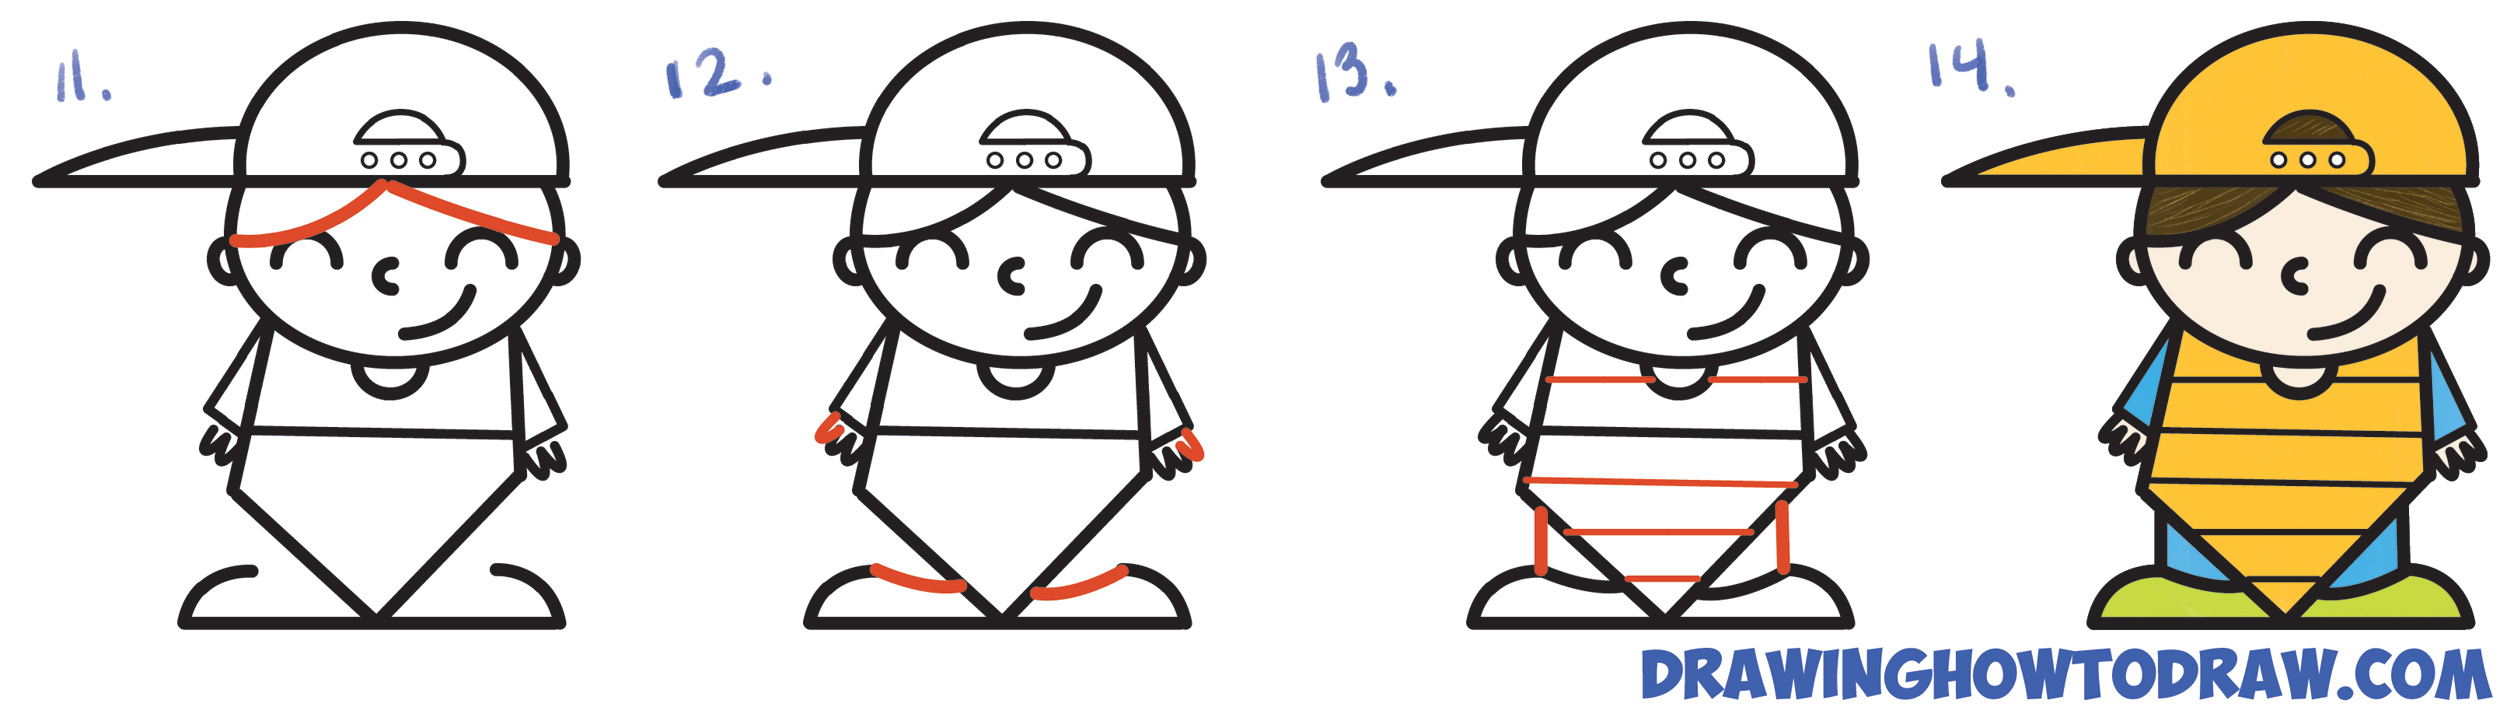 How to Draw a Cute Cartoon Kid Baseball Catcher Word Cartoon Simple Steps Drawing Lesson for Children & Beginners